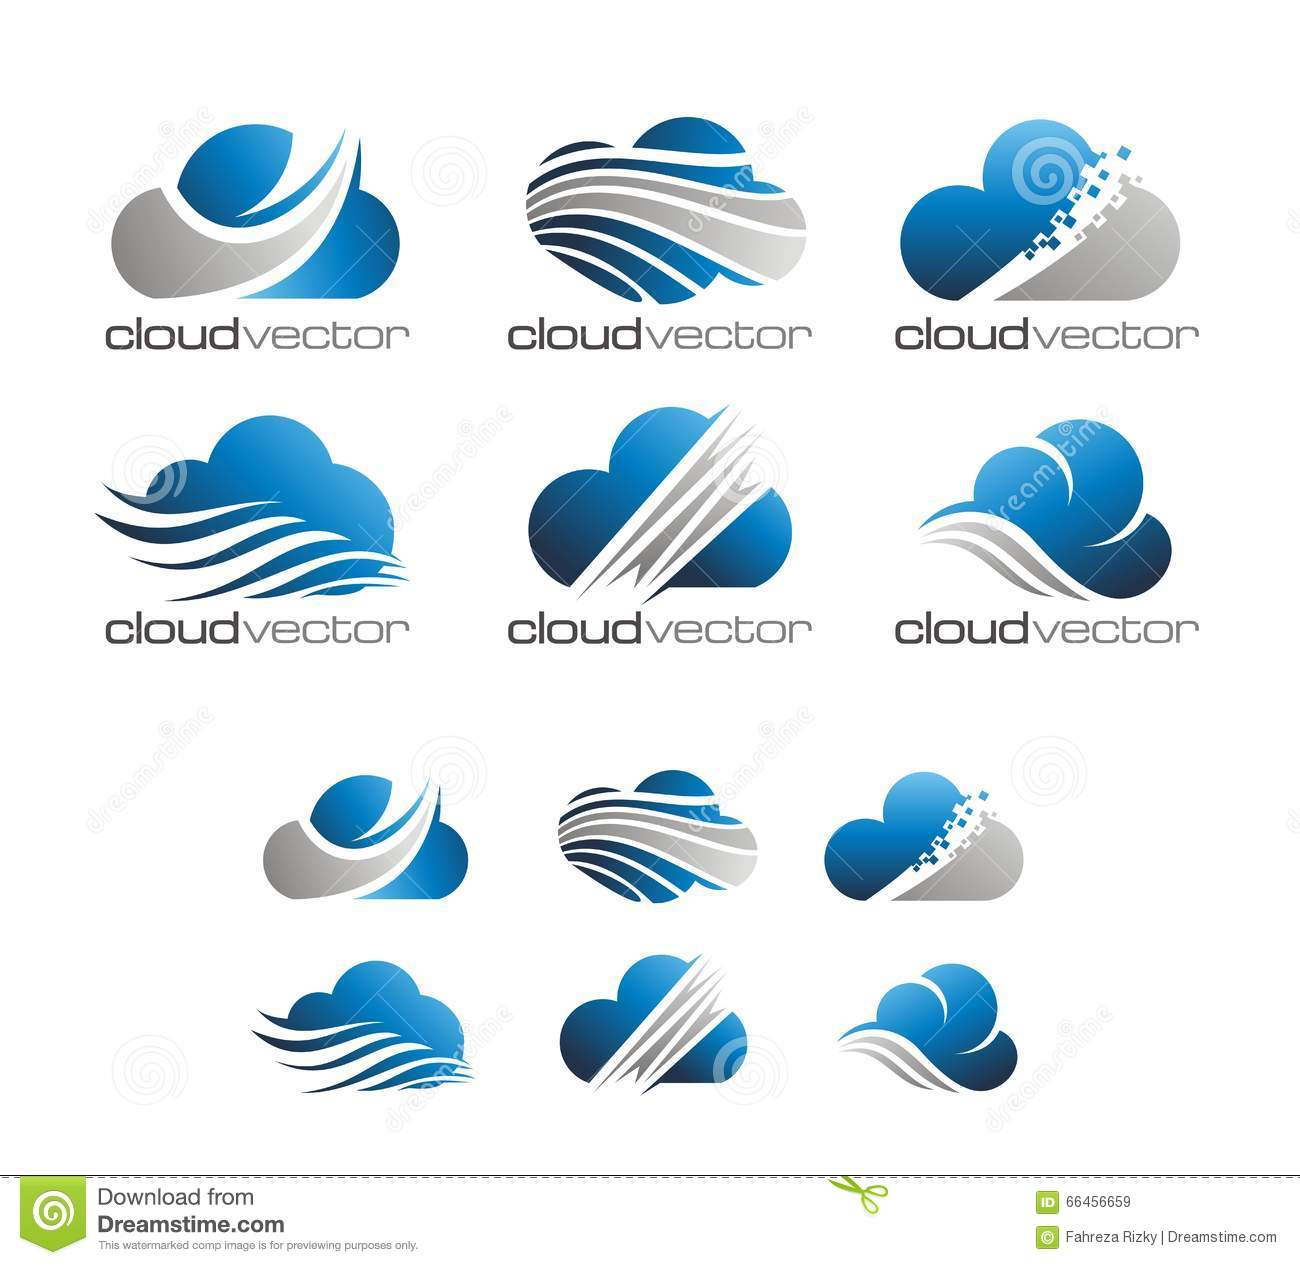 modern cloud logo vector stock illustration illustration